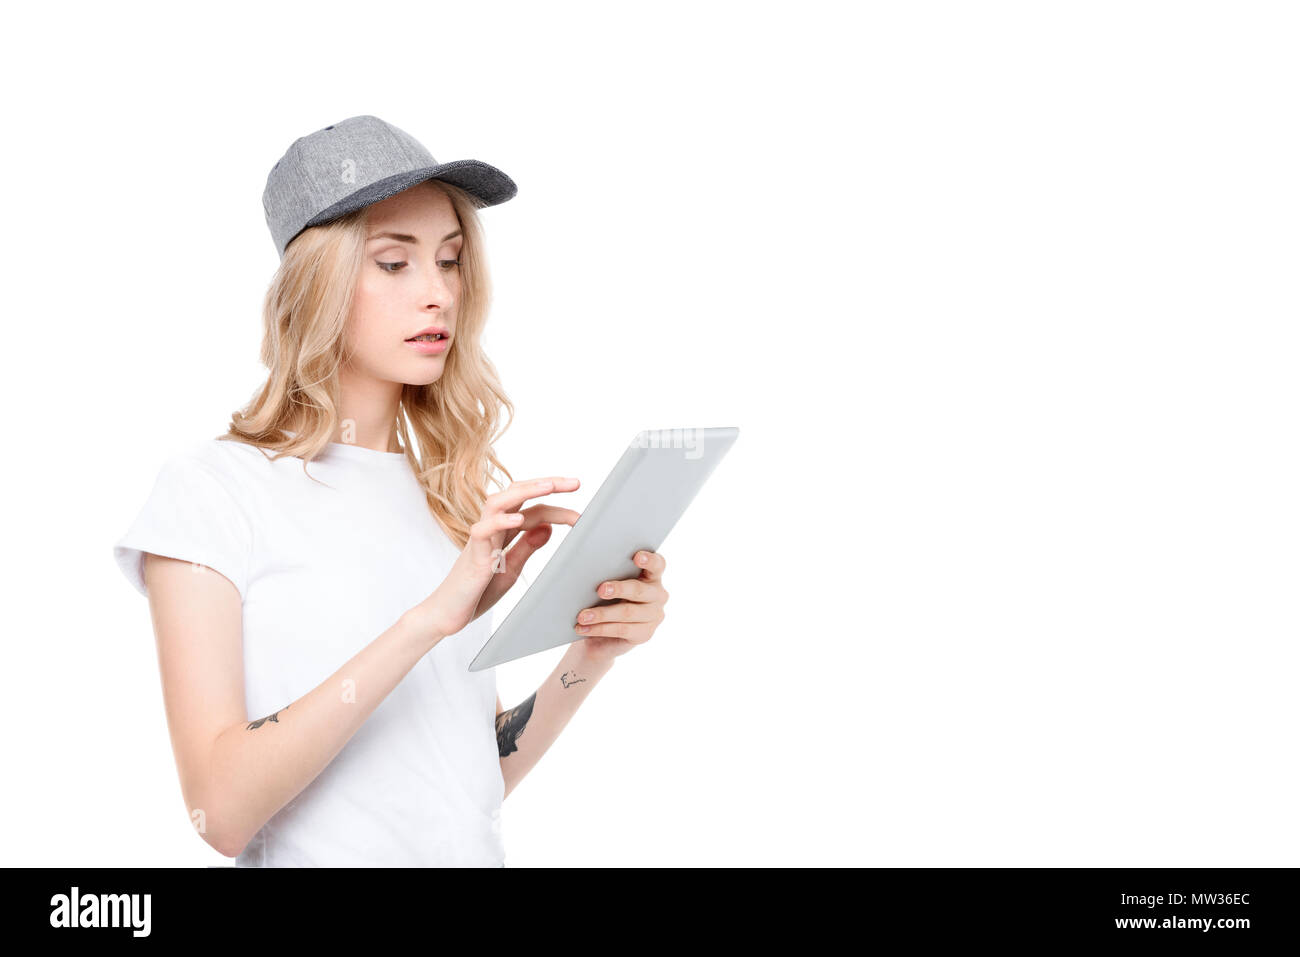 Half-length shot of a young woman using a digital tablet. - Stock Image